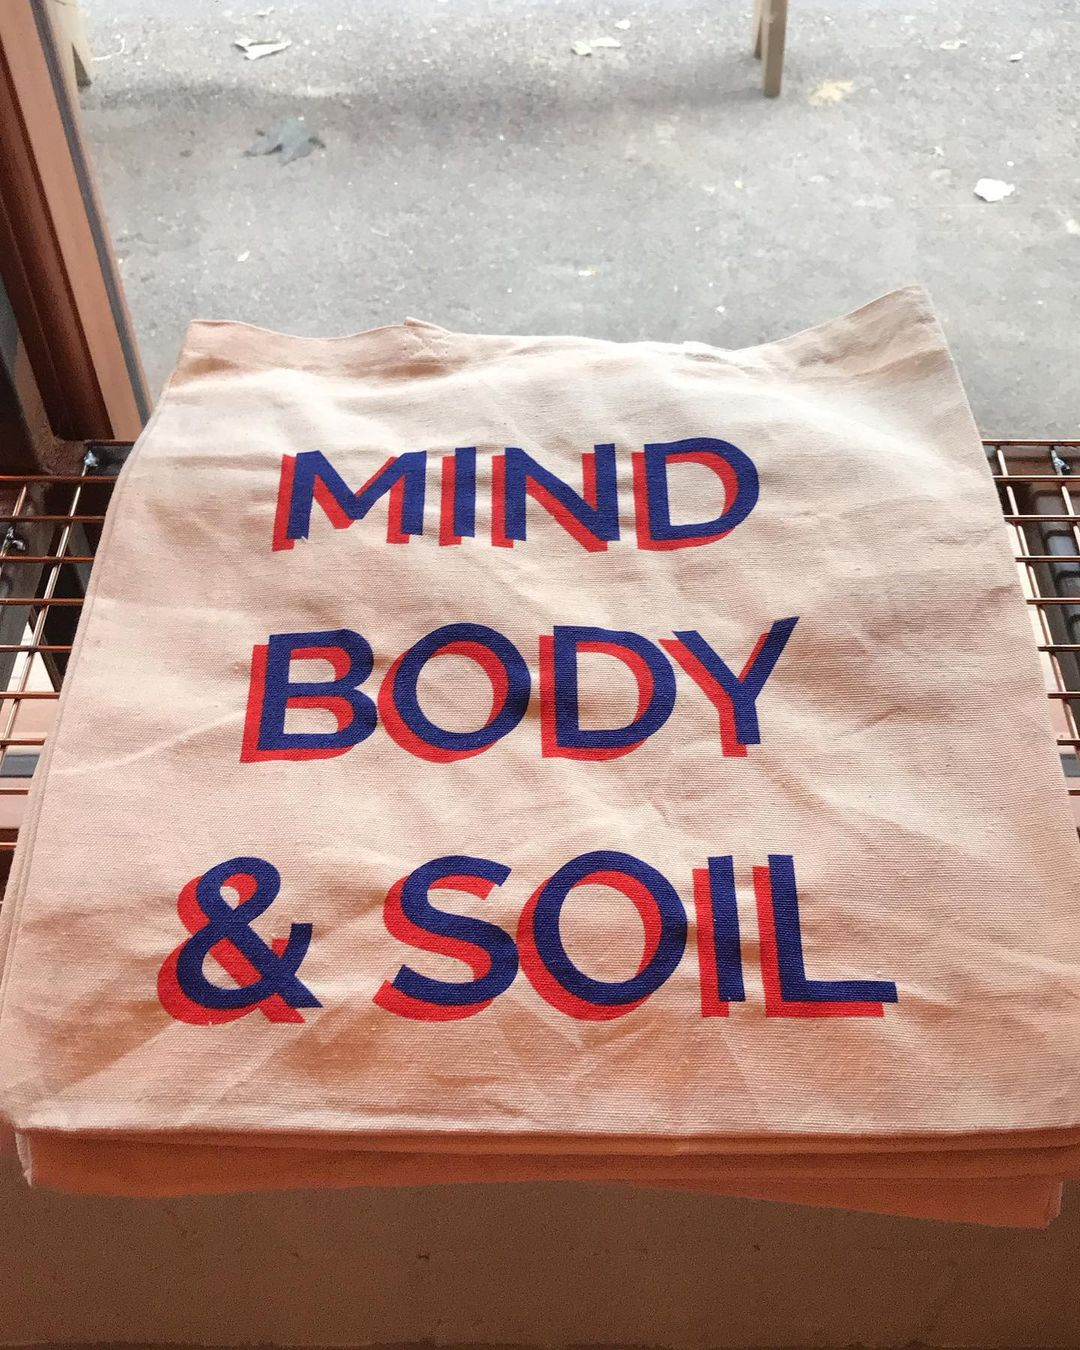 London's best restaurant merch includes this Mind, Body, & Soil tote bag from Jolene